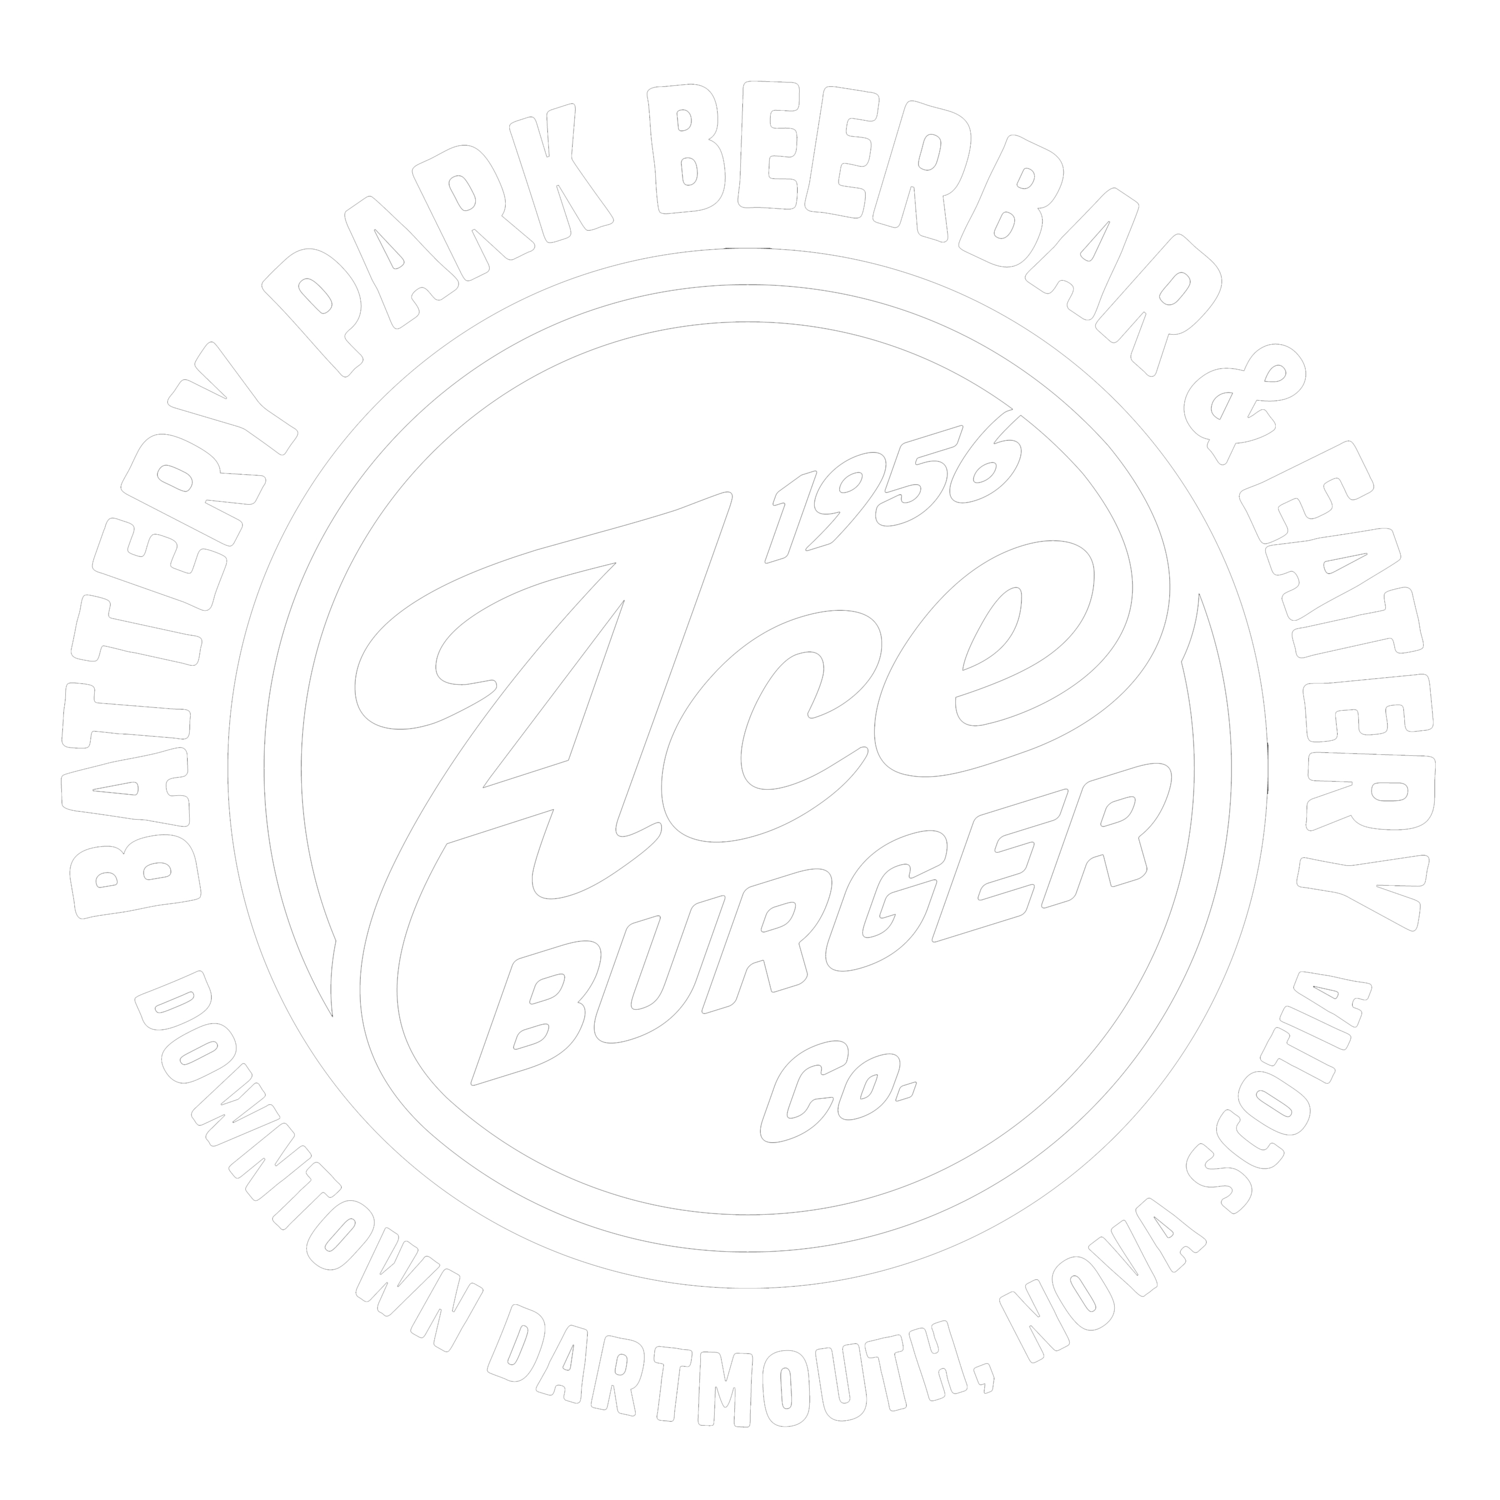 Ace Burger Company